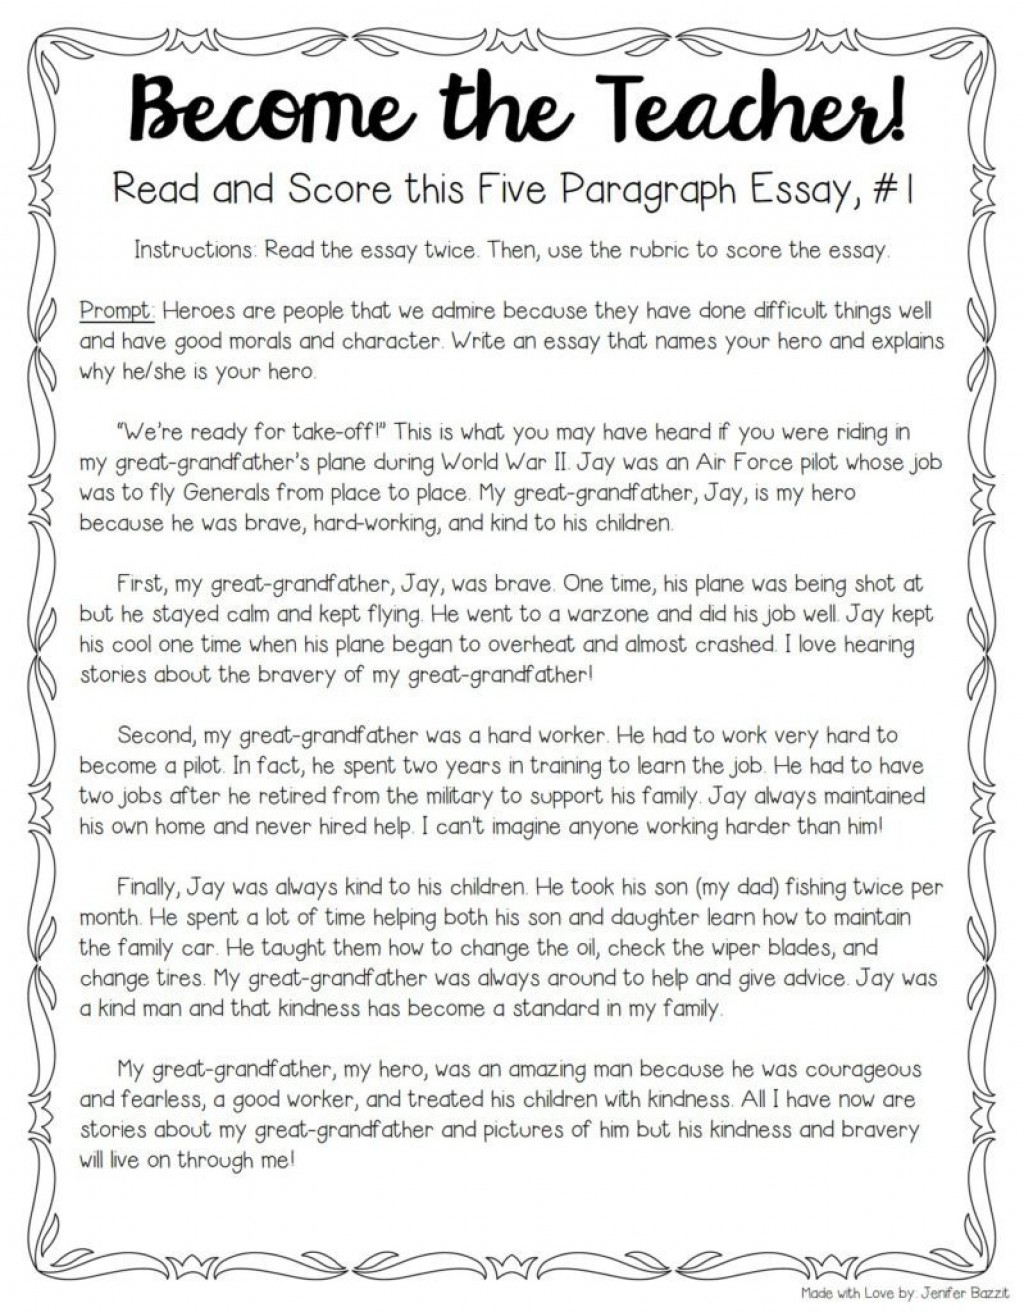 006 My Hero Essay Example Tips For Teaching And Grading Five Paragraph Essays Full Narrative Examples Persuasive Score Sat Wondrous In History With Outline Favourite Salman Khan English National Large